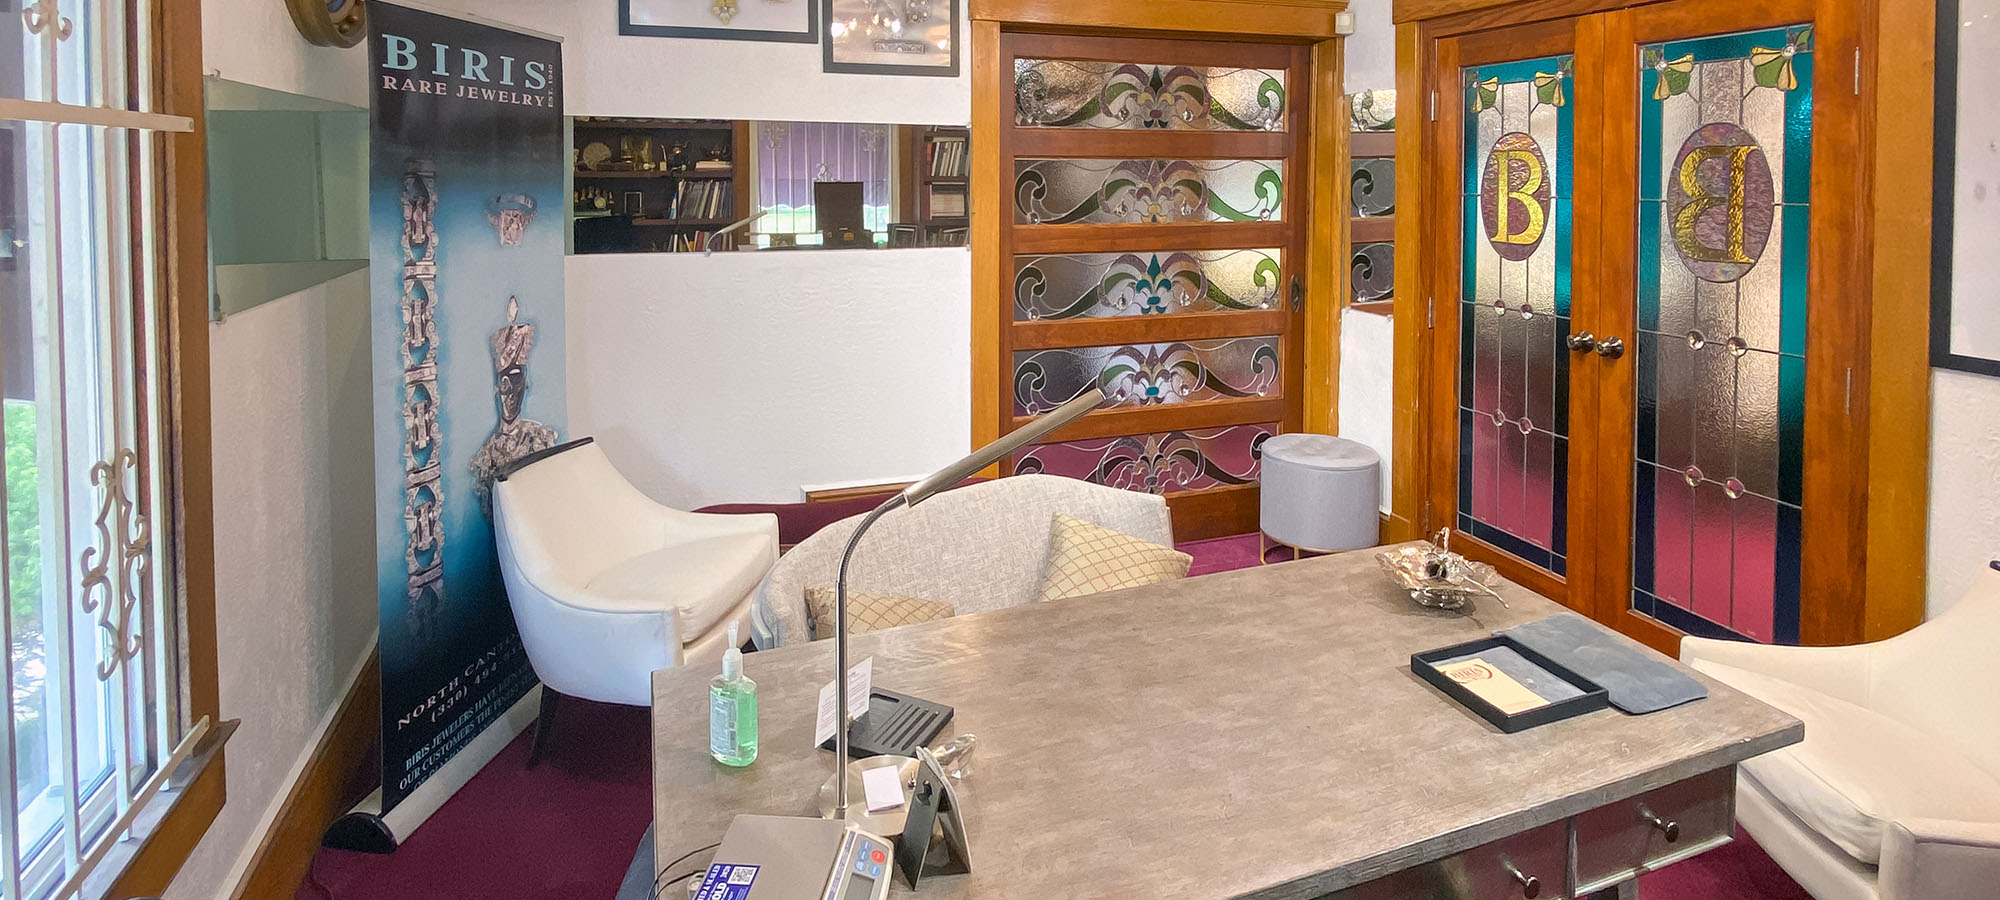 Biris Jewelers Private Viewing Rooms